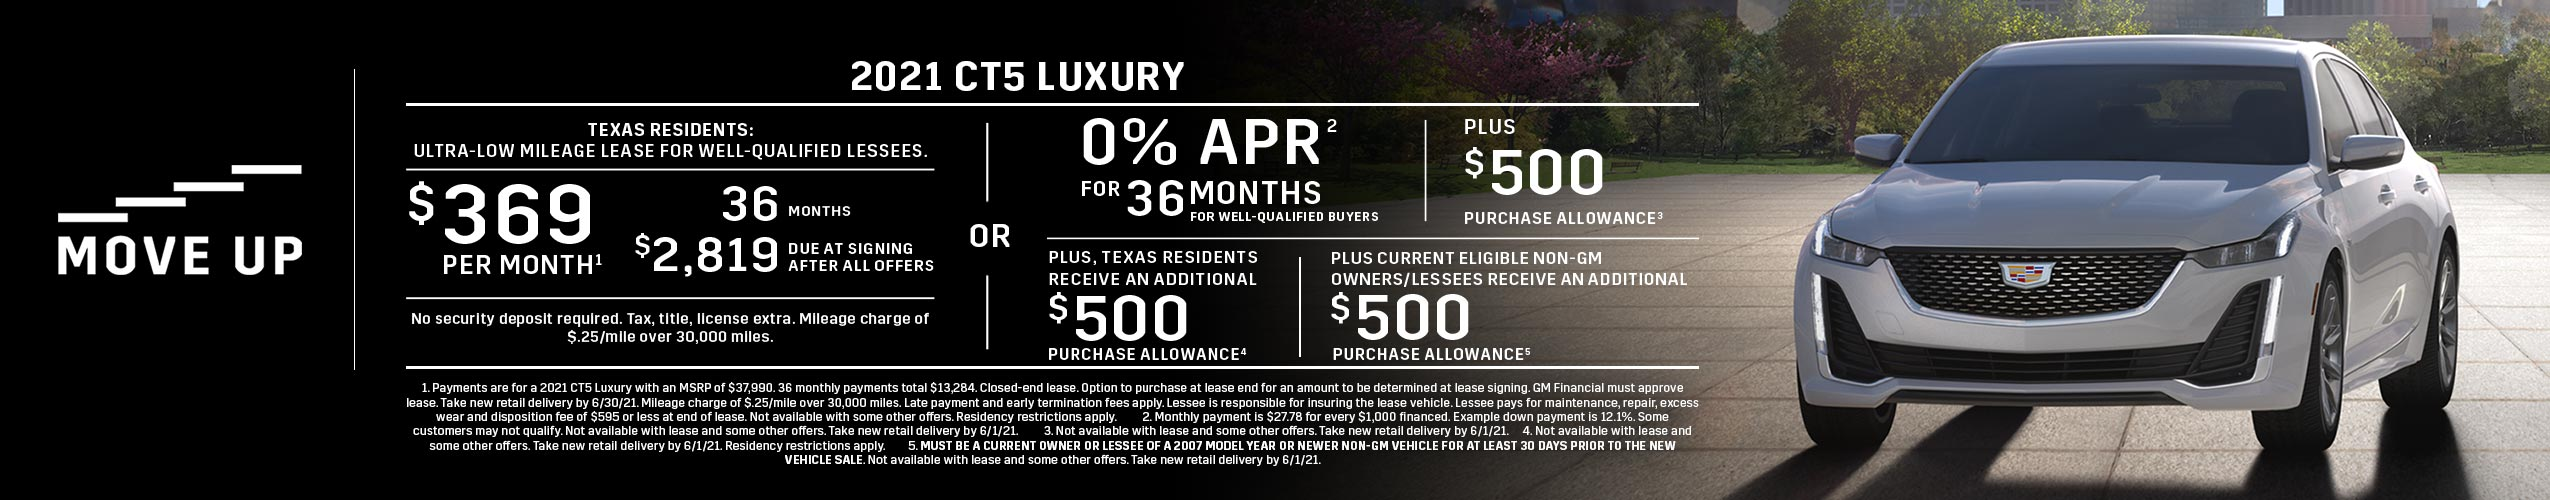 2021 CT5 Luxury: Lease or APR Offer (Image) - 7ca47d